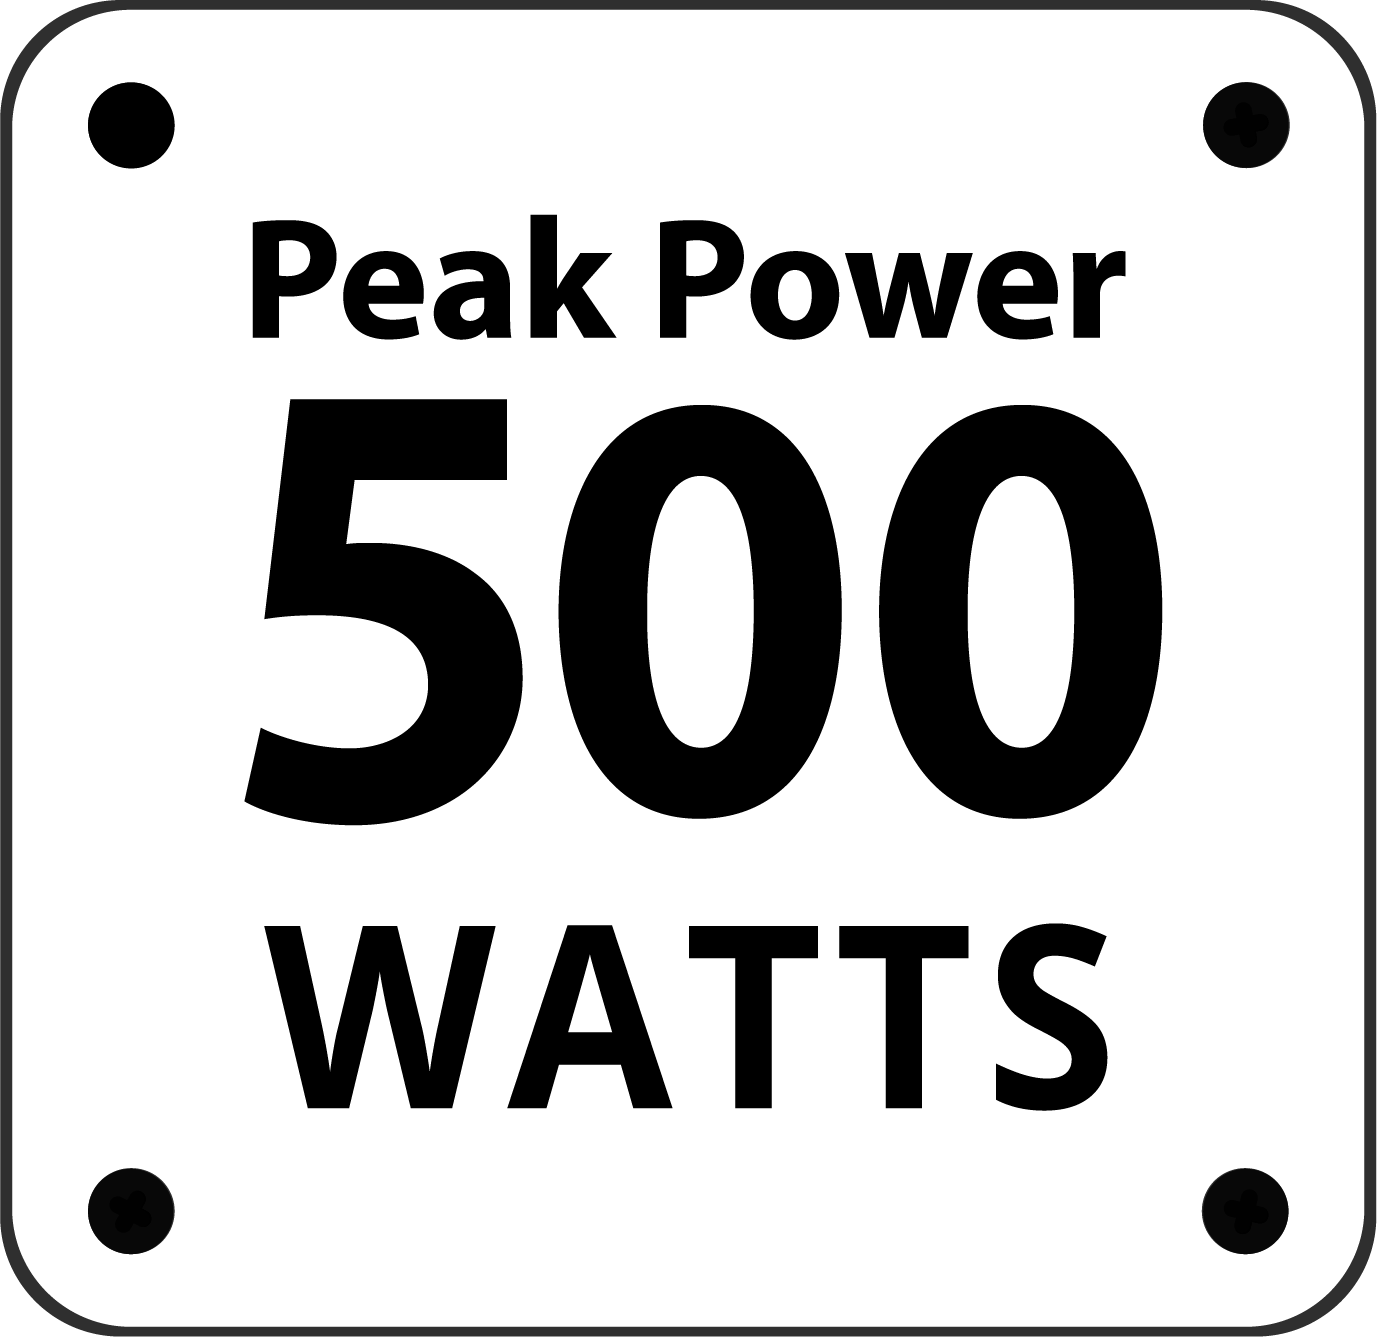 500-peak-power